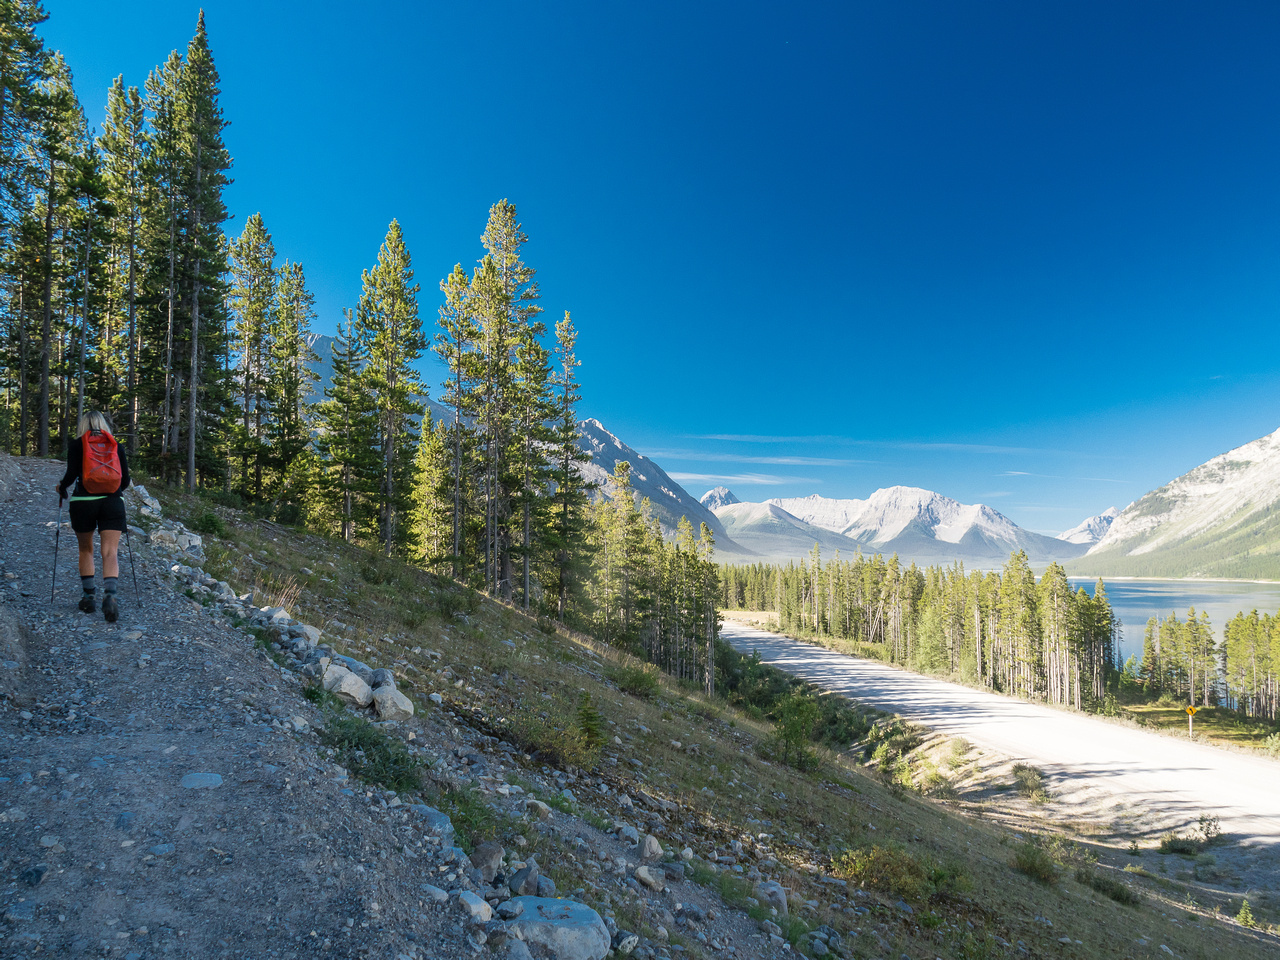 The trail is a highway from the Sparrowhawk Picnic area to the High Rockies Trail (HRT).